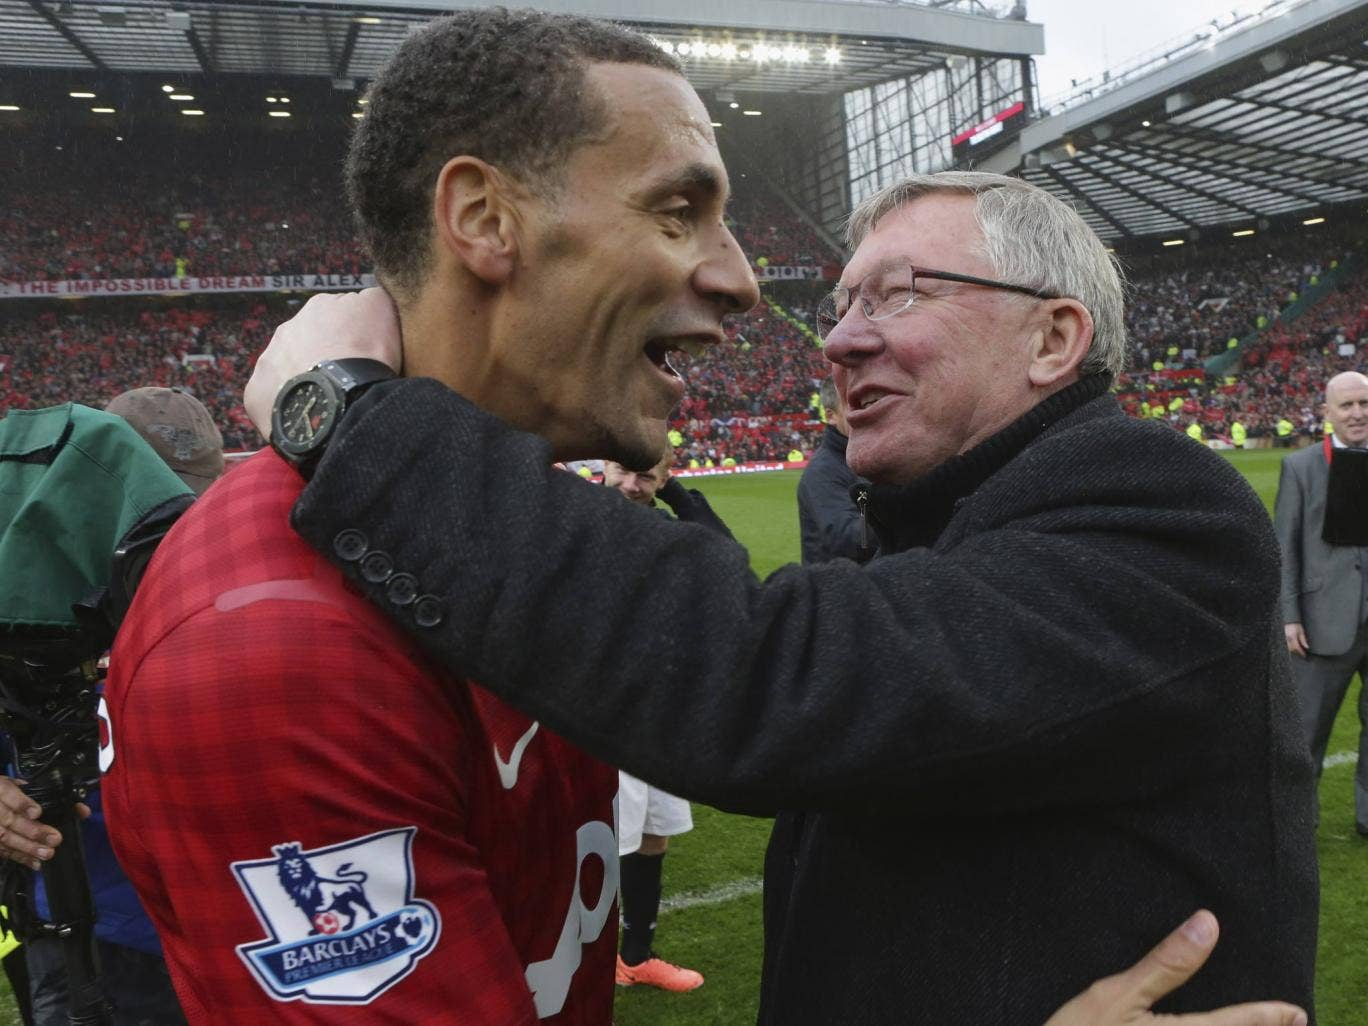 Rio Ferdinand and Sir Alex Ferguson share a moment after the former's winning goal gave Manchester United a 2-1 win over Swansea